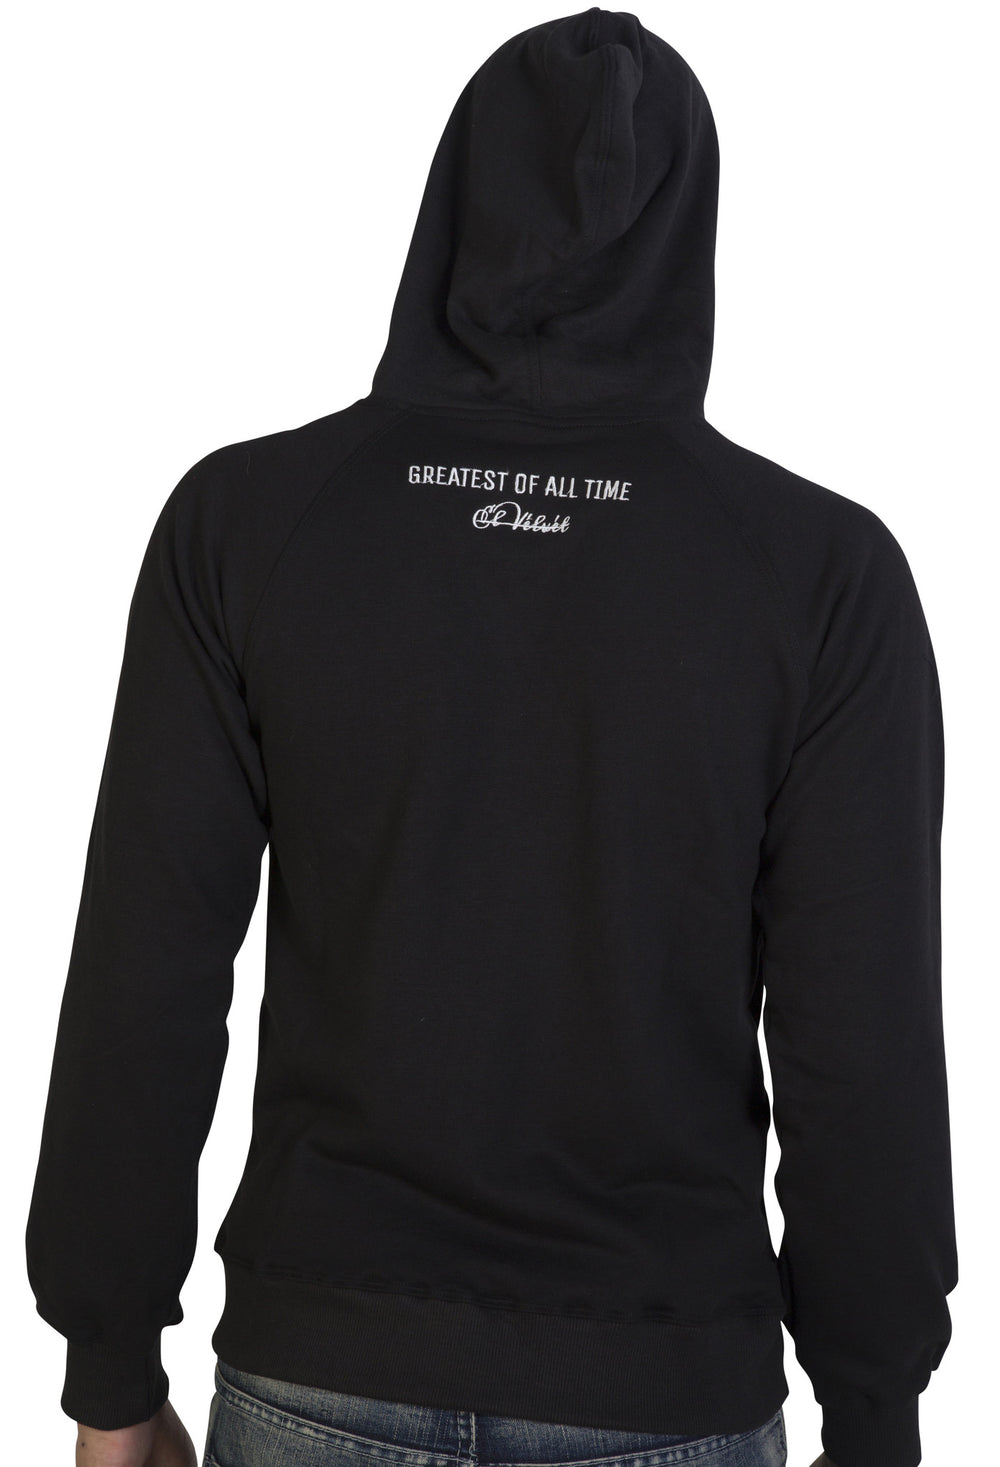 Black 'The GOAT' Hoody - Greatest Of all Time